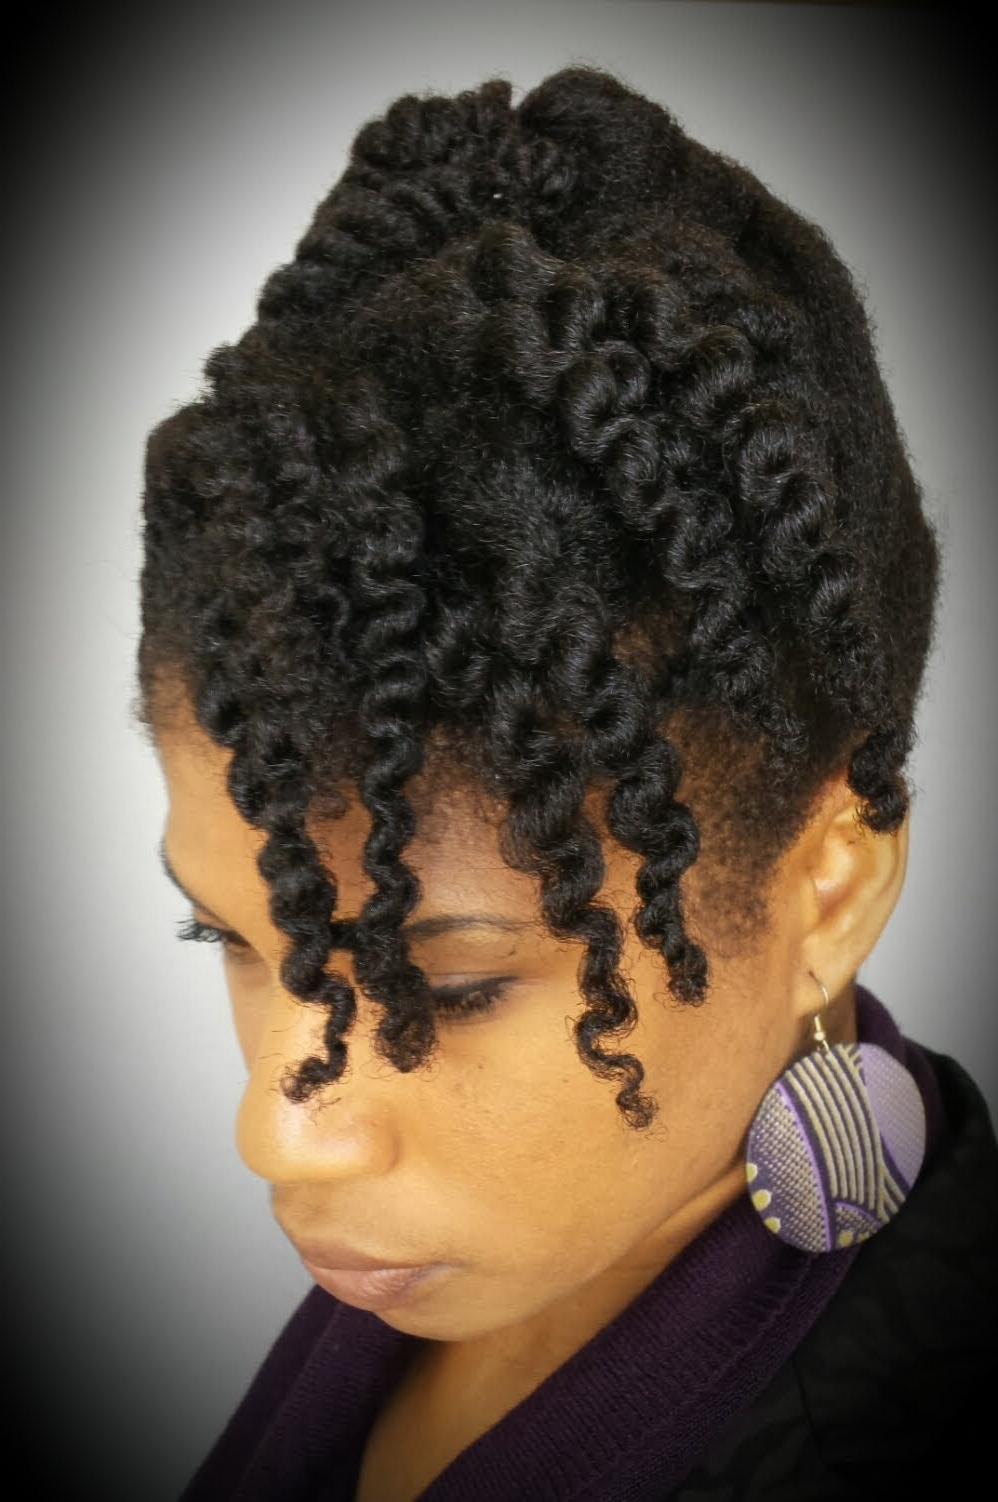 4 Natural Hair 10 Minute Cornrow And Twist Updo (Protective Style Within Recent Natural Updo Cornrow Hairstyles (View 1 of 15)